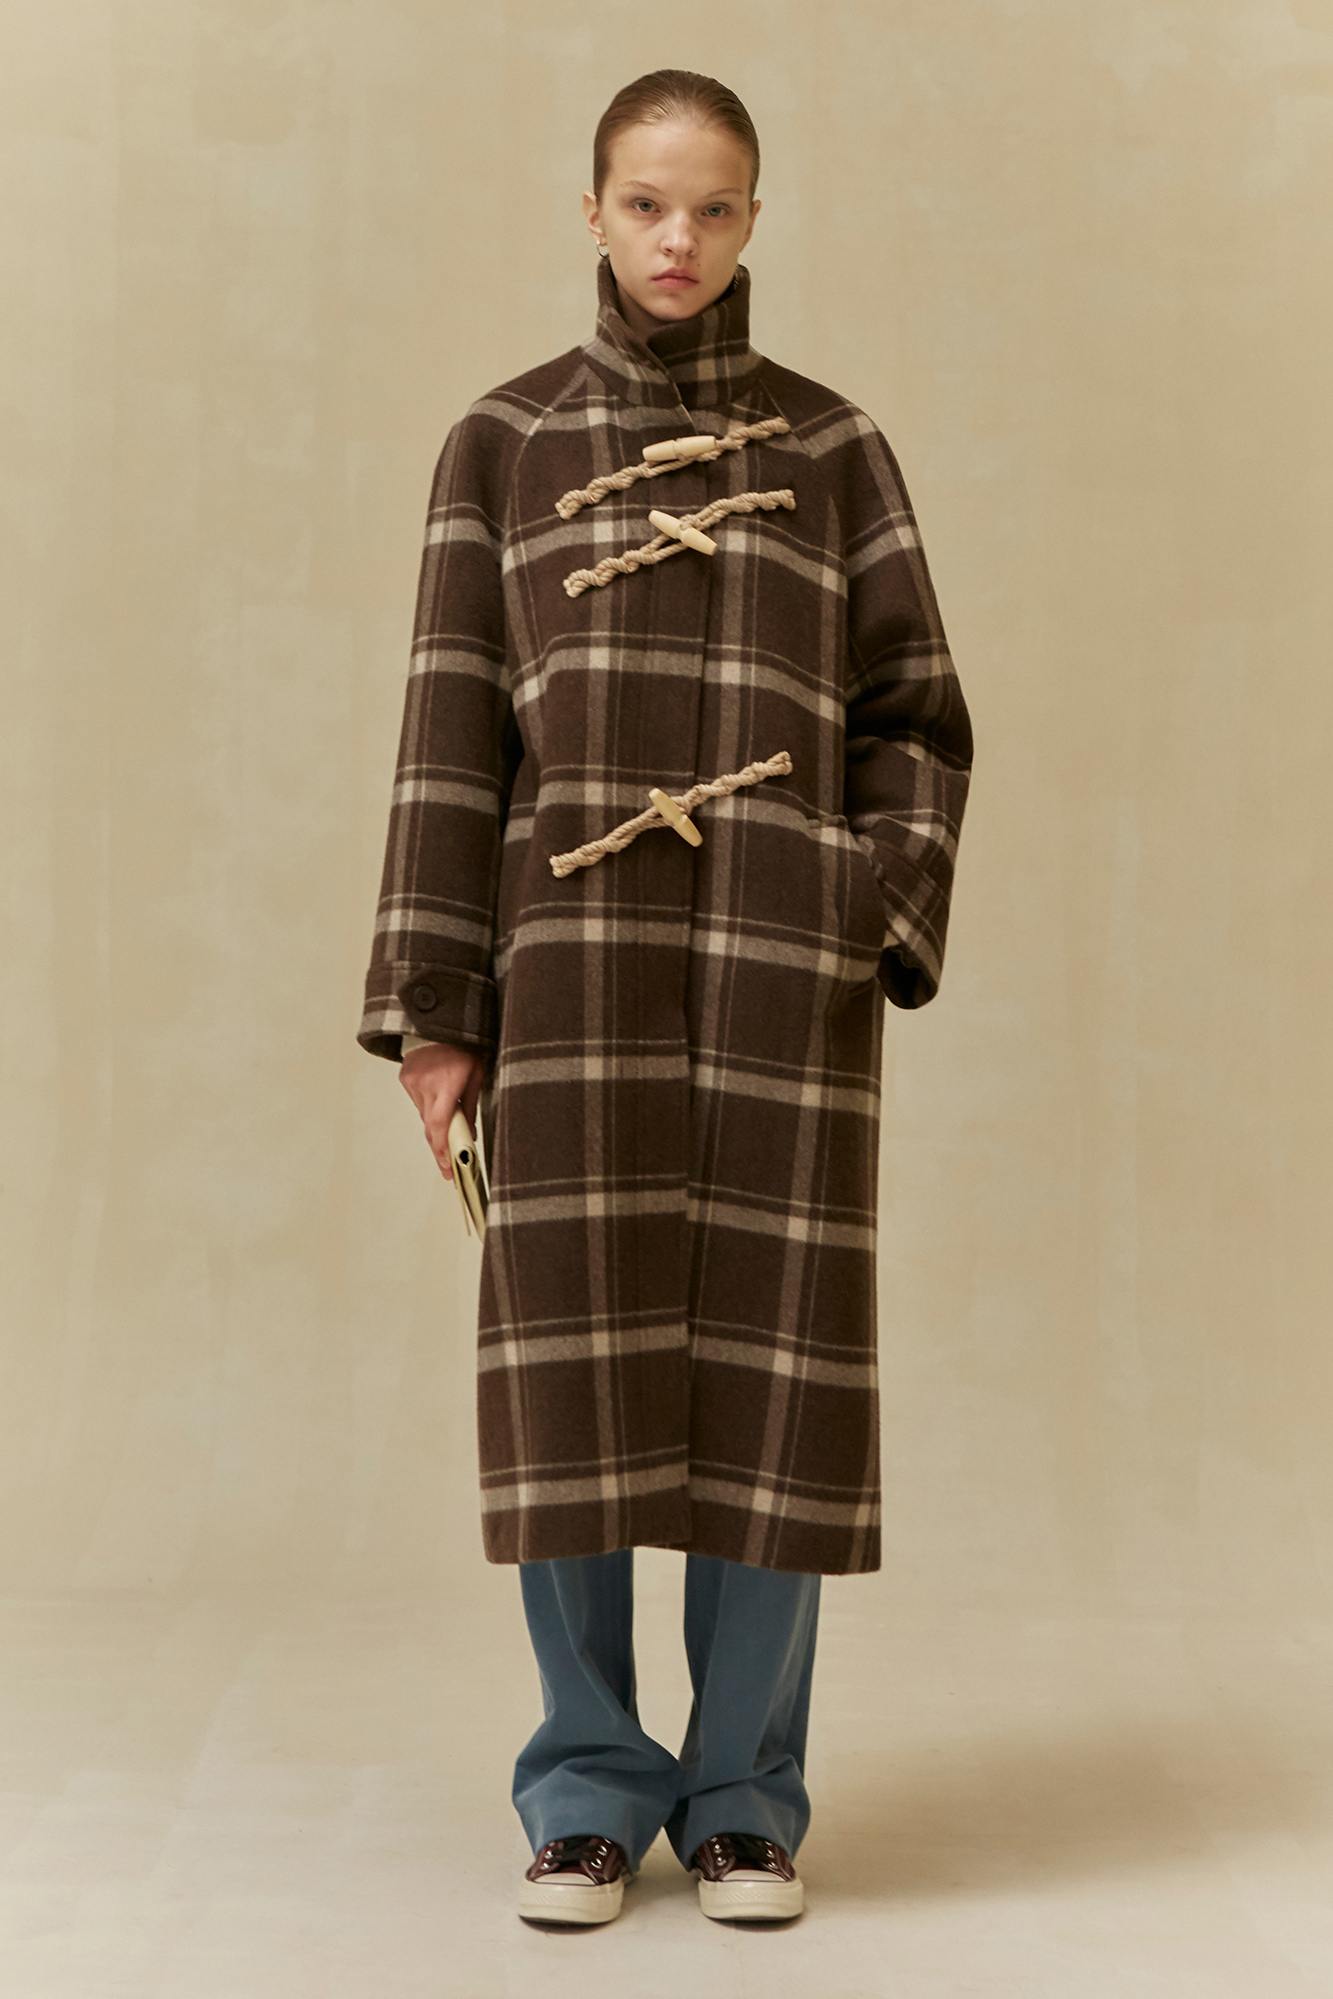 <u>SHOP</u><br>19 WINTER LOCLE Duffle Coat - brown check